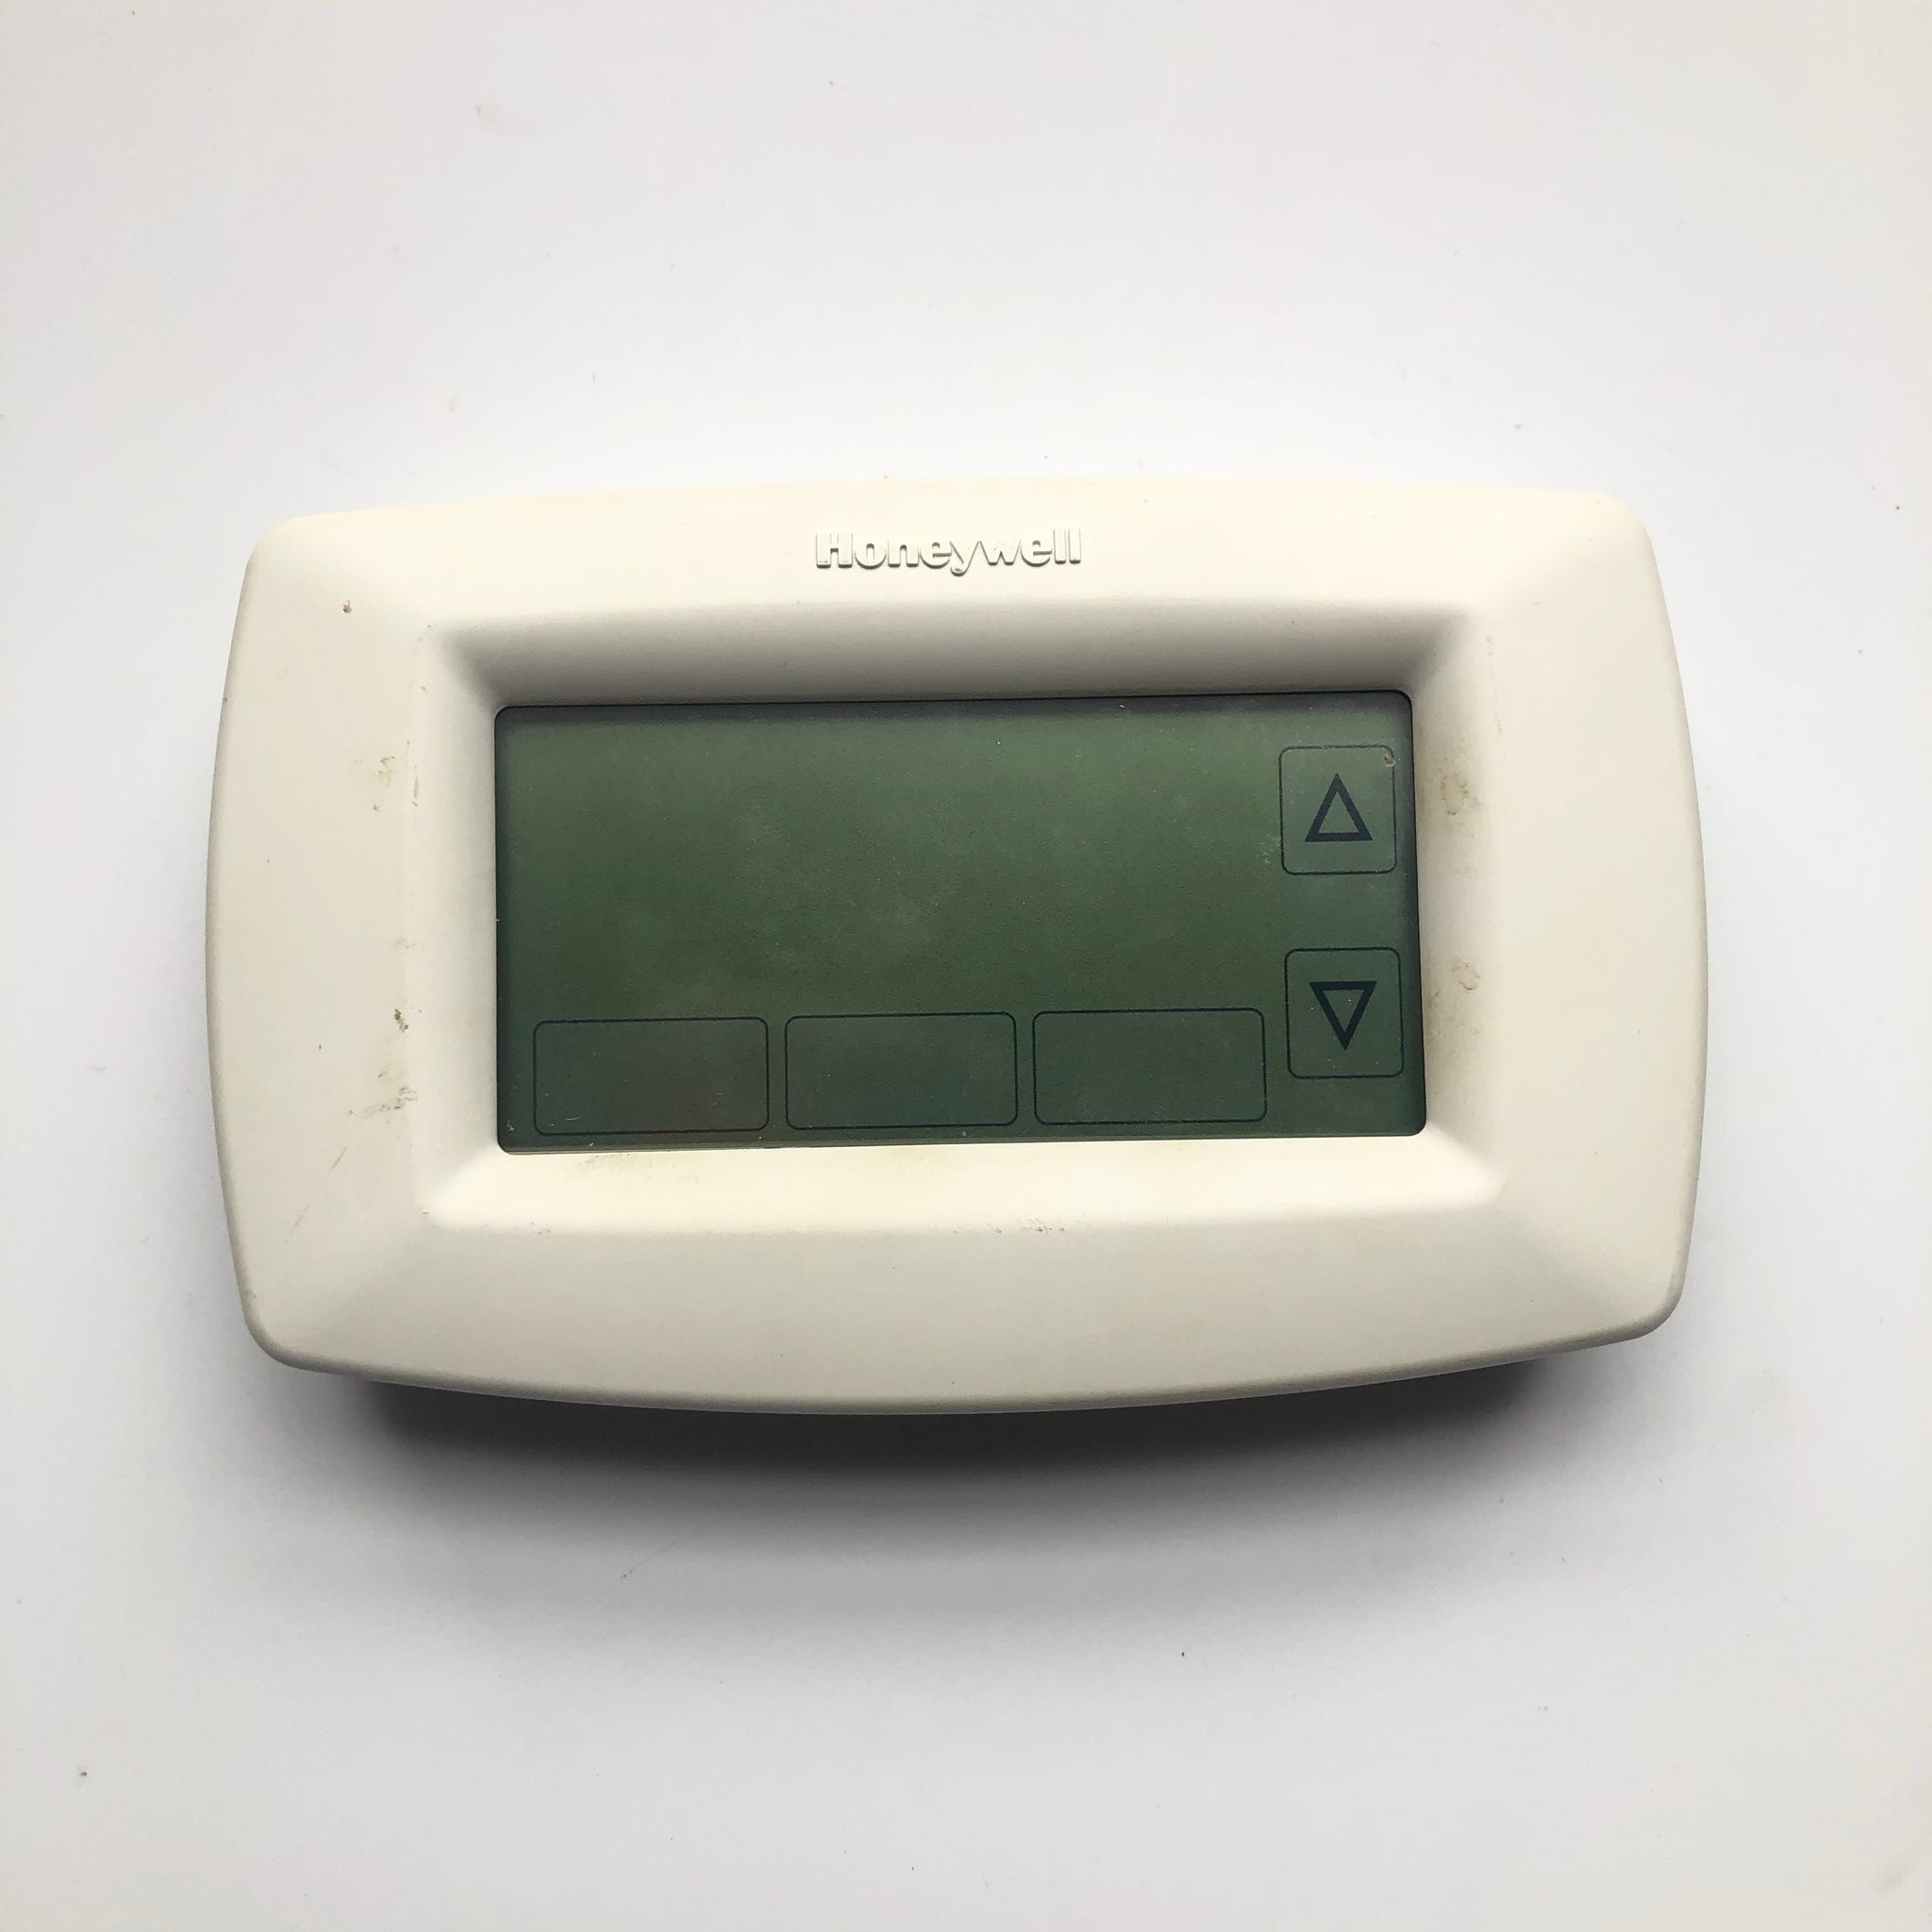 Honeywell Thermostat RTH7600D1014